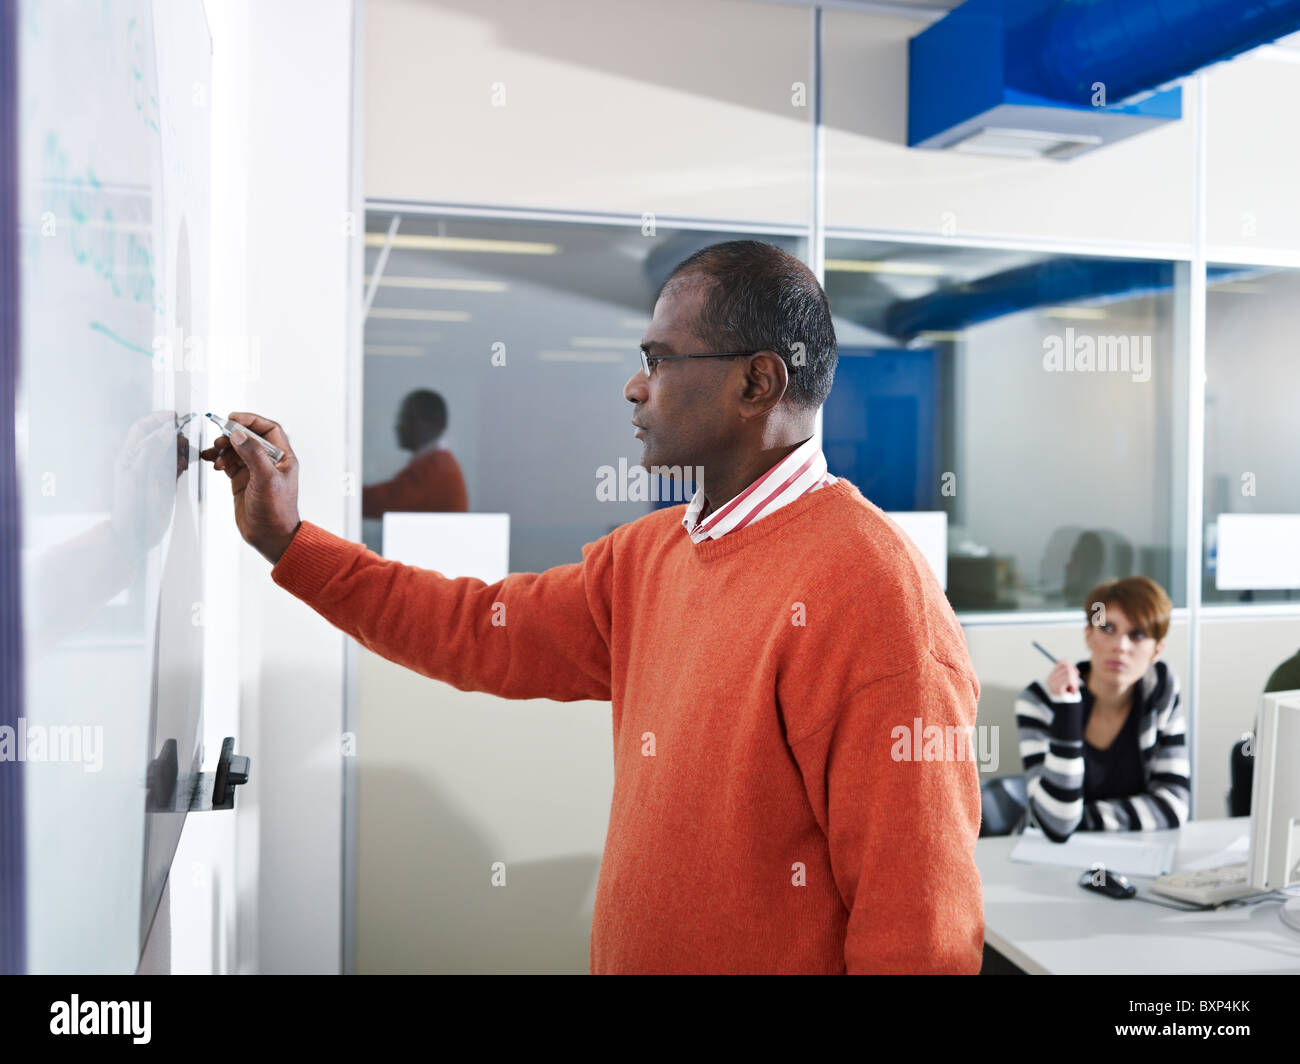 Computer class with indian male teacher writing on board and students in background. Horizontal shape, side view, - Stock Image